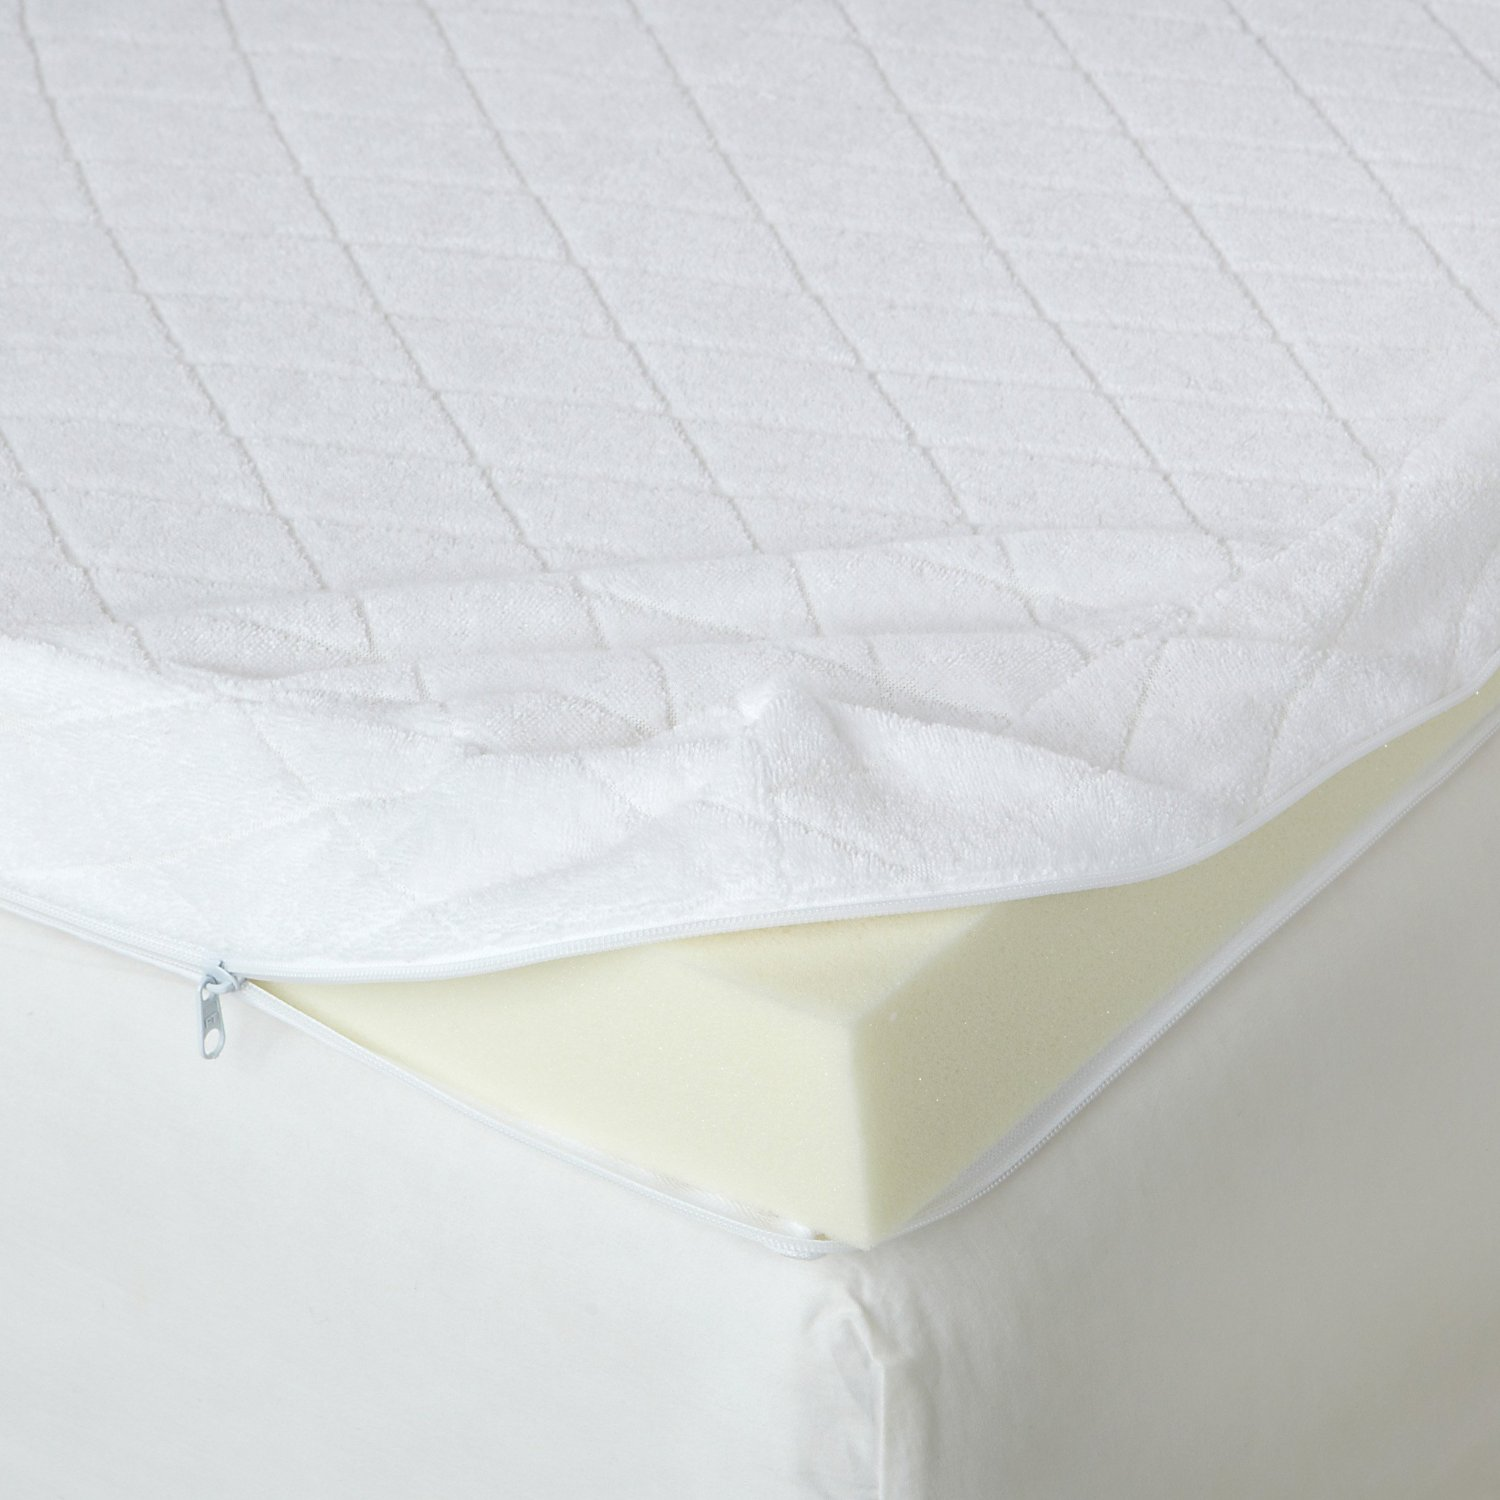 Isotonic Ultimate Memory Foam Mattress Topper Review